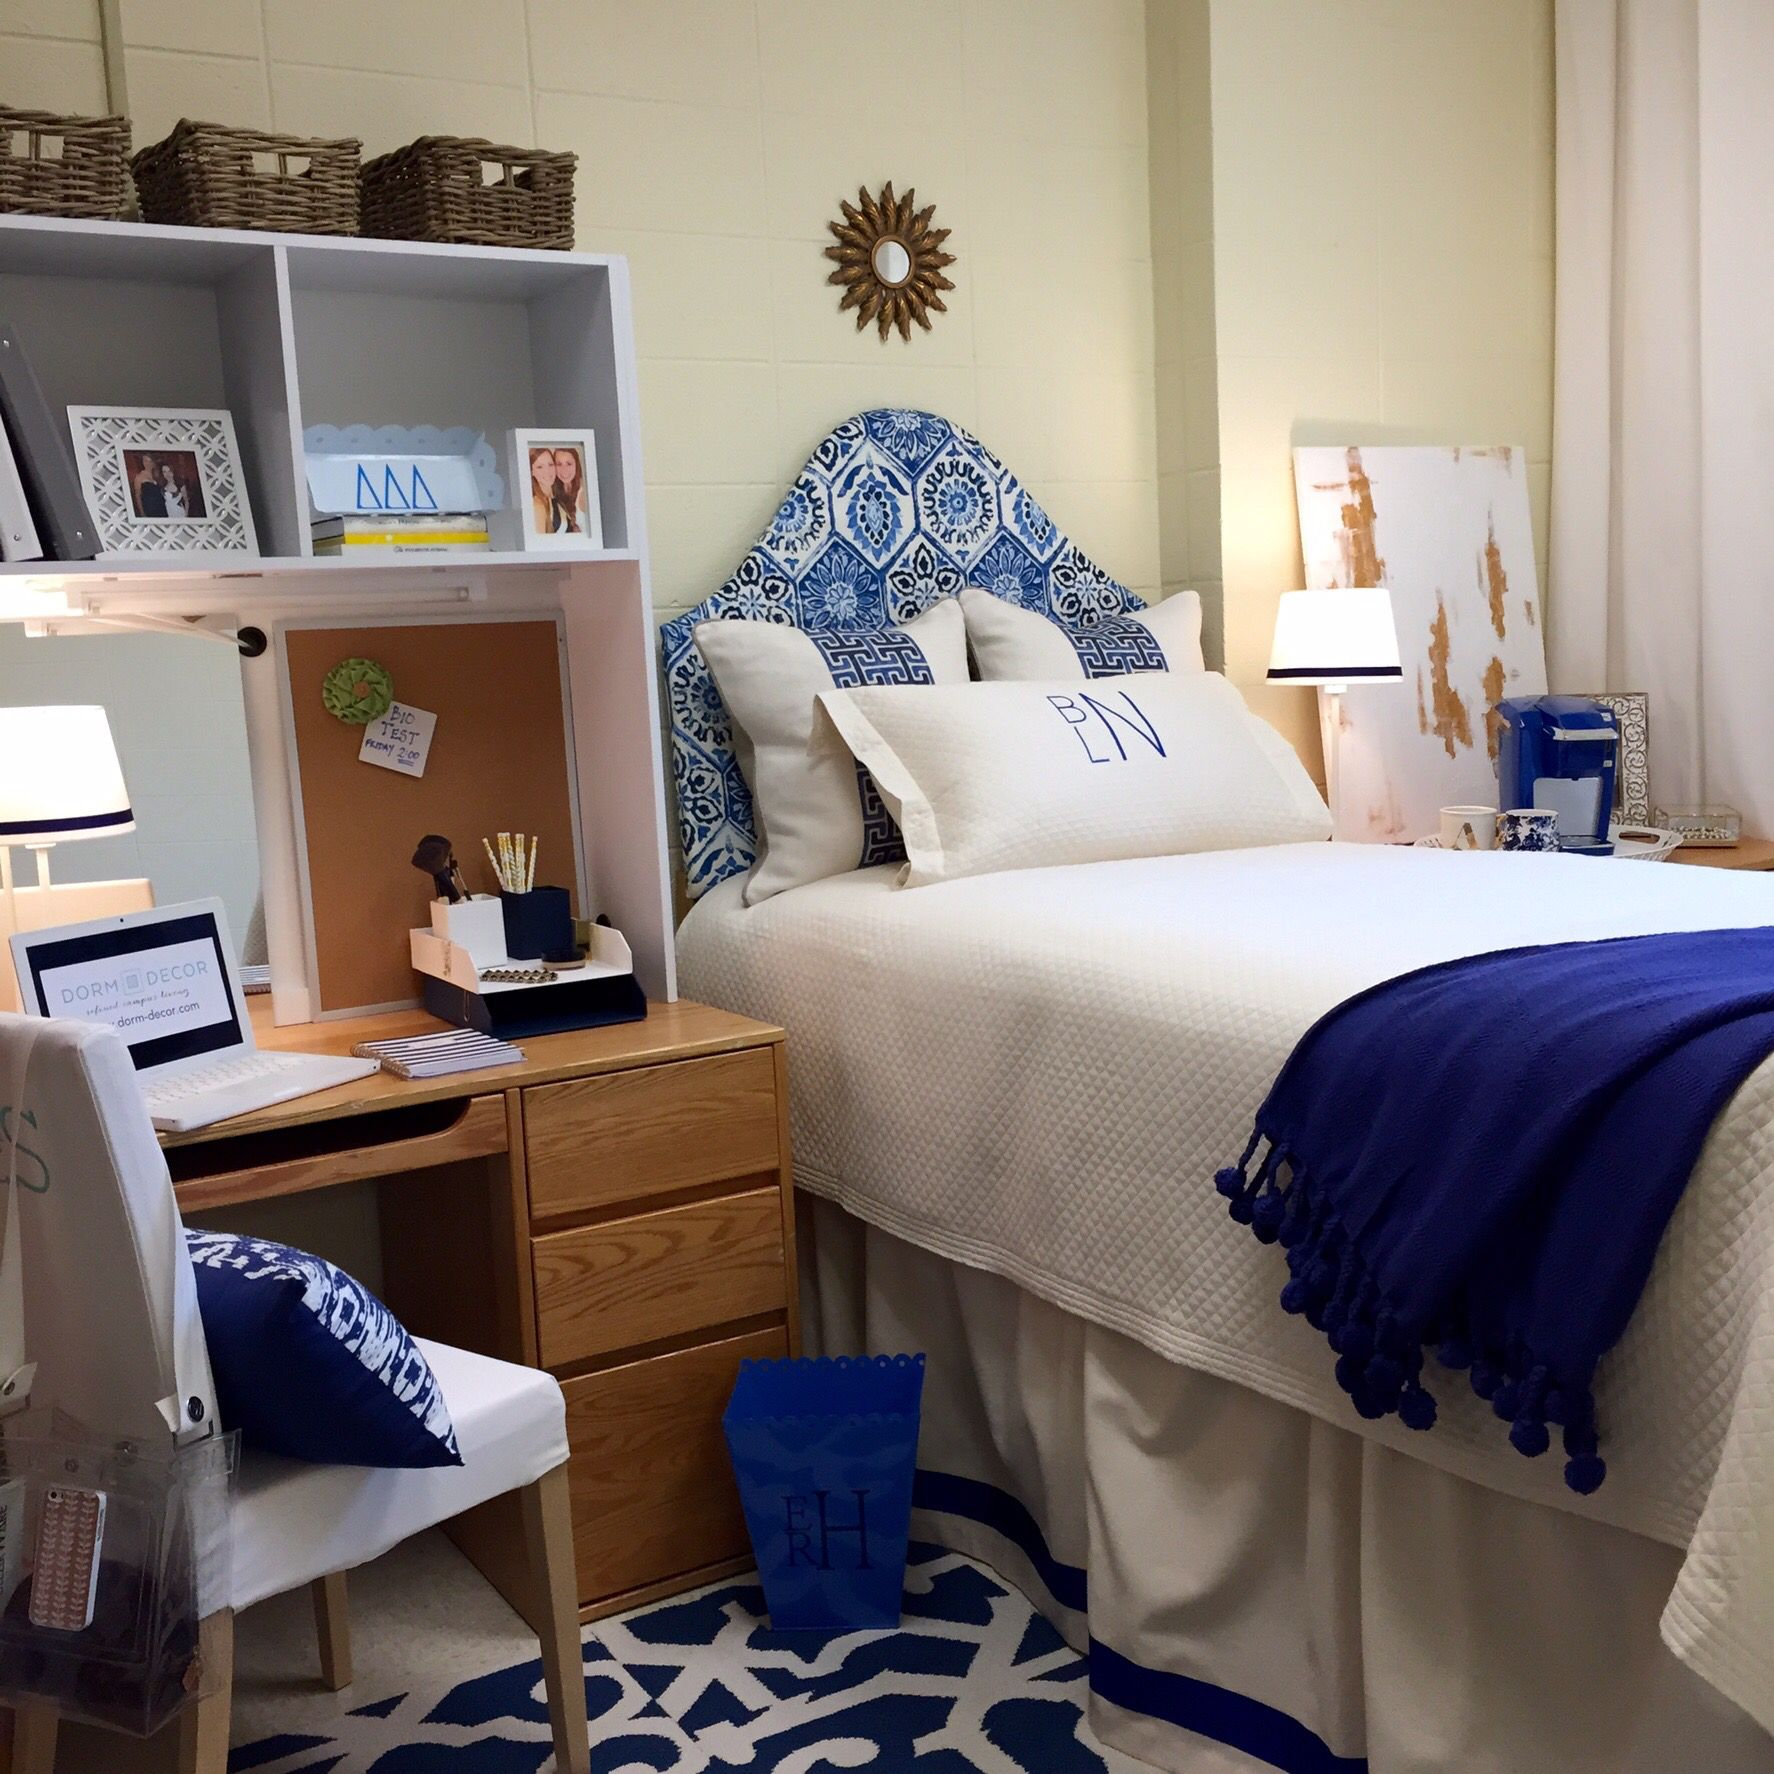 Dorm Decor Presents Our 2015 Designs For The Modern Dorm Room Follow Us On